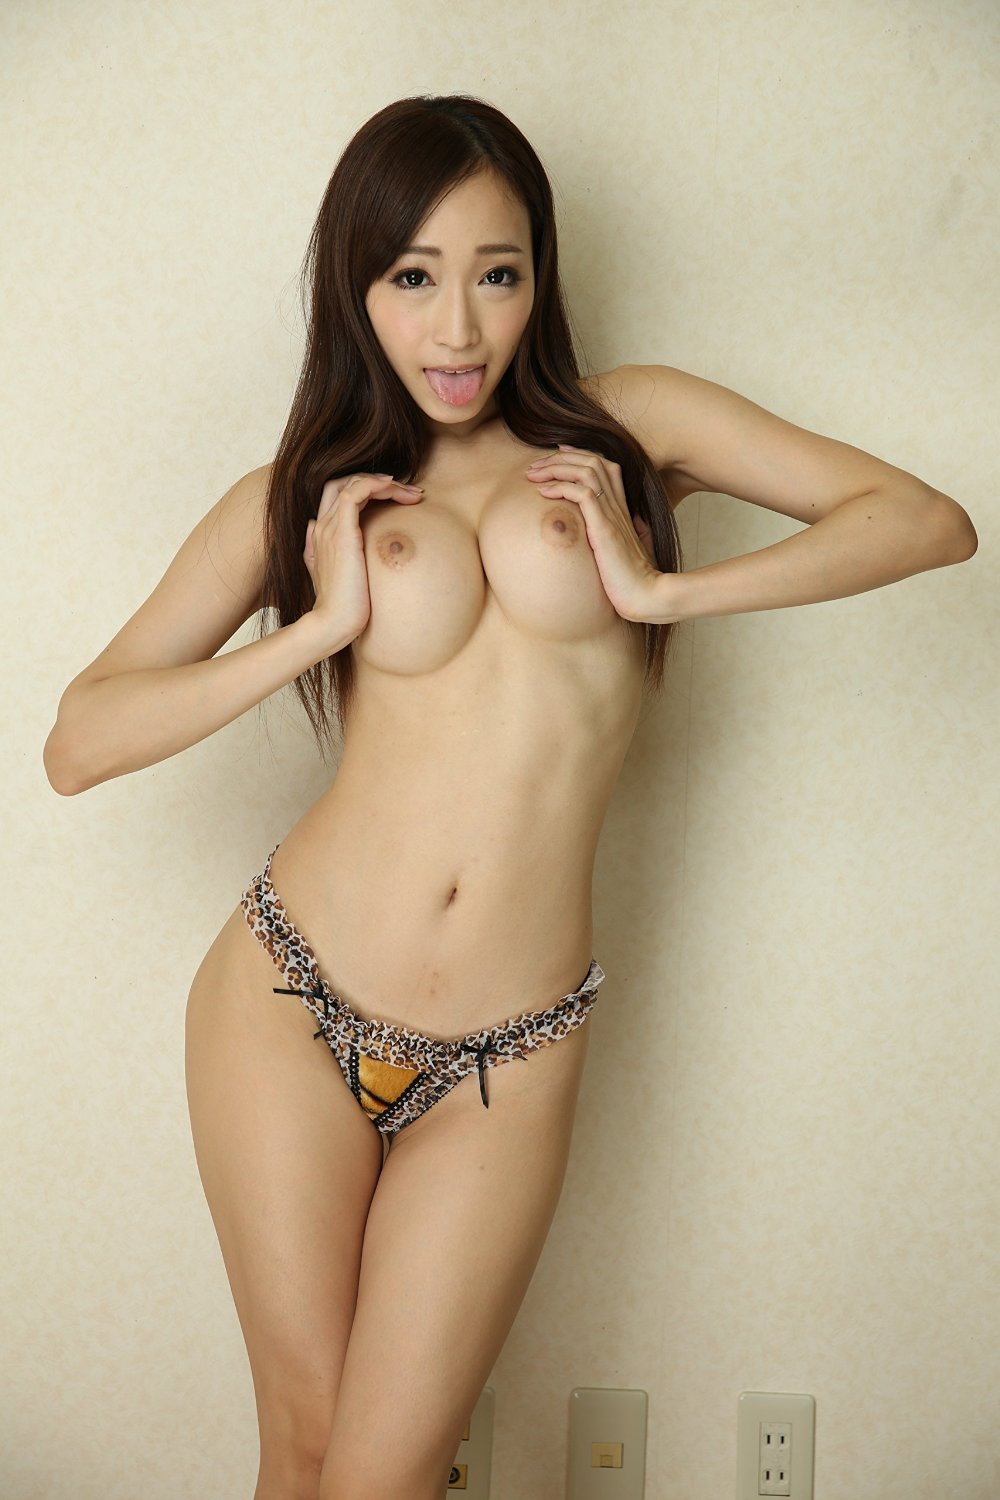 Topless asian models stock photos and pictures